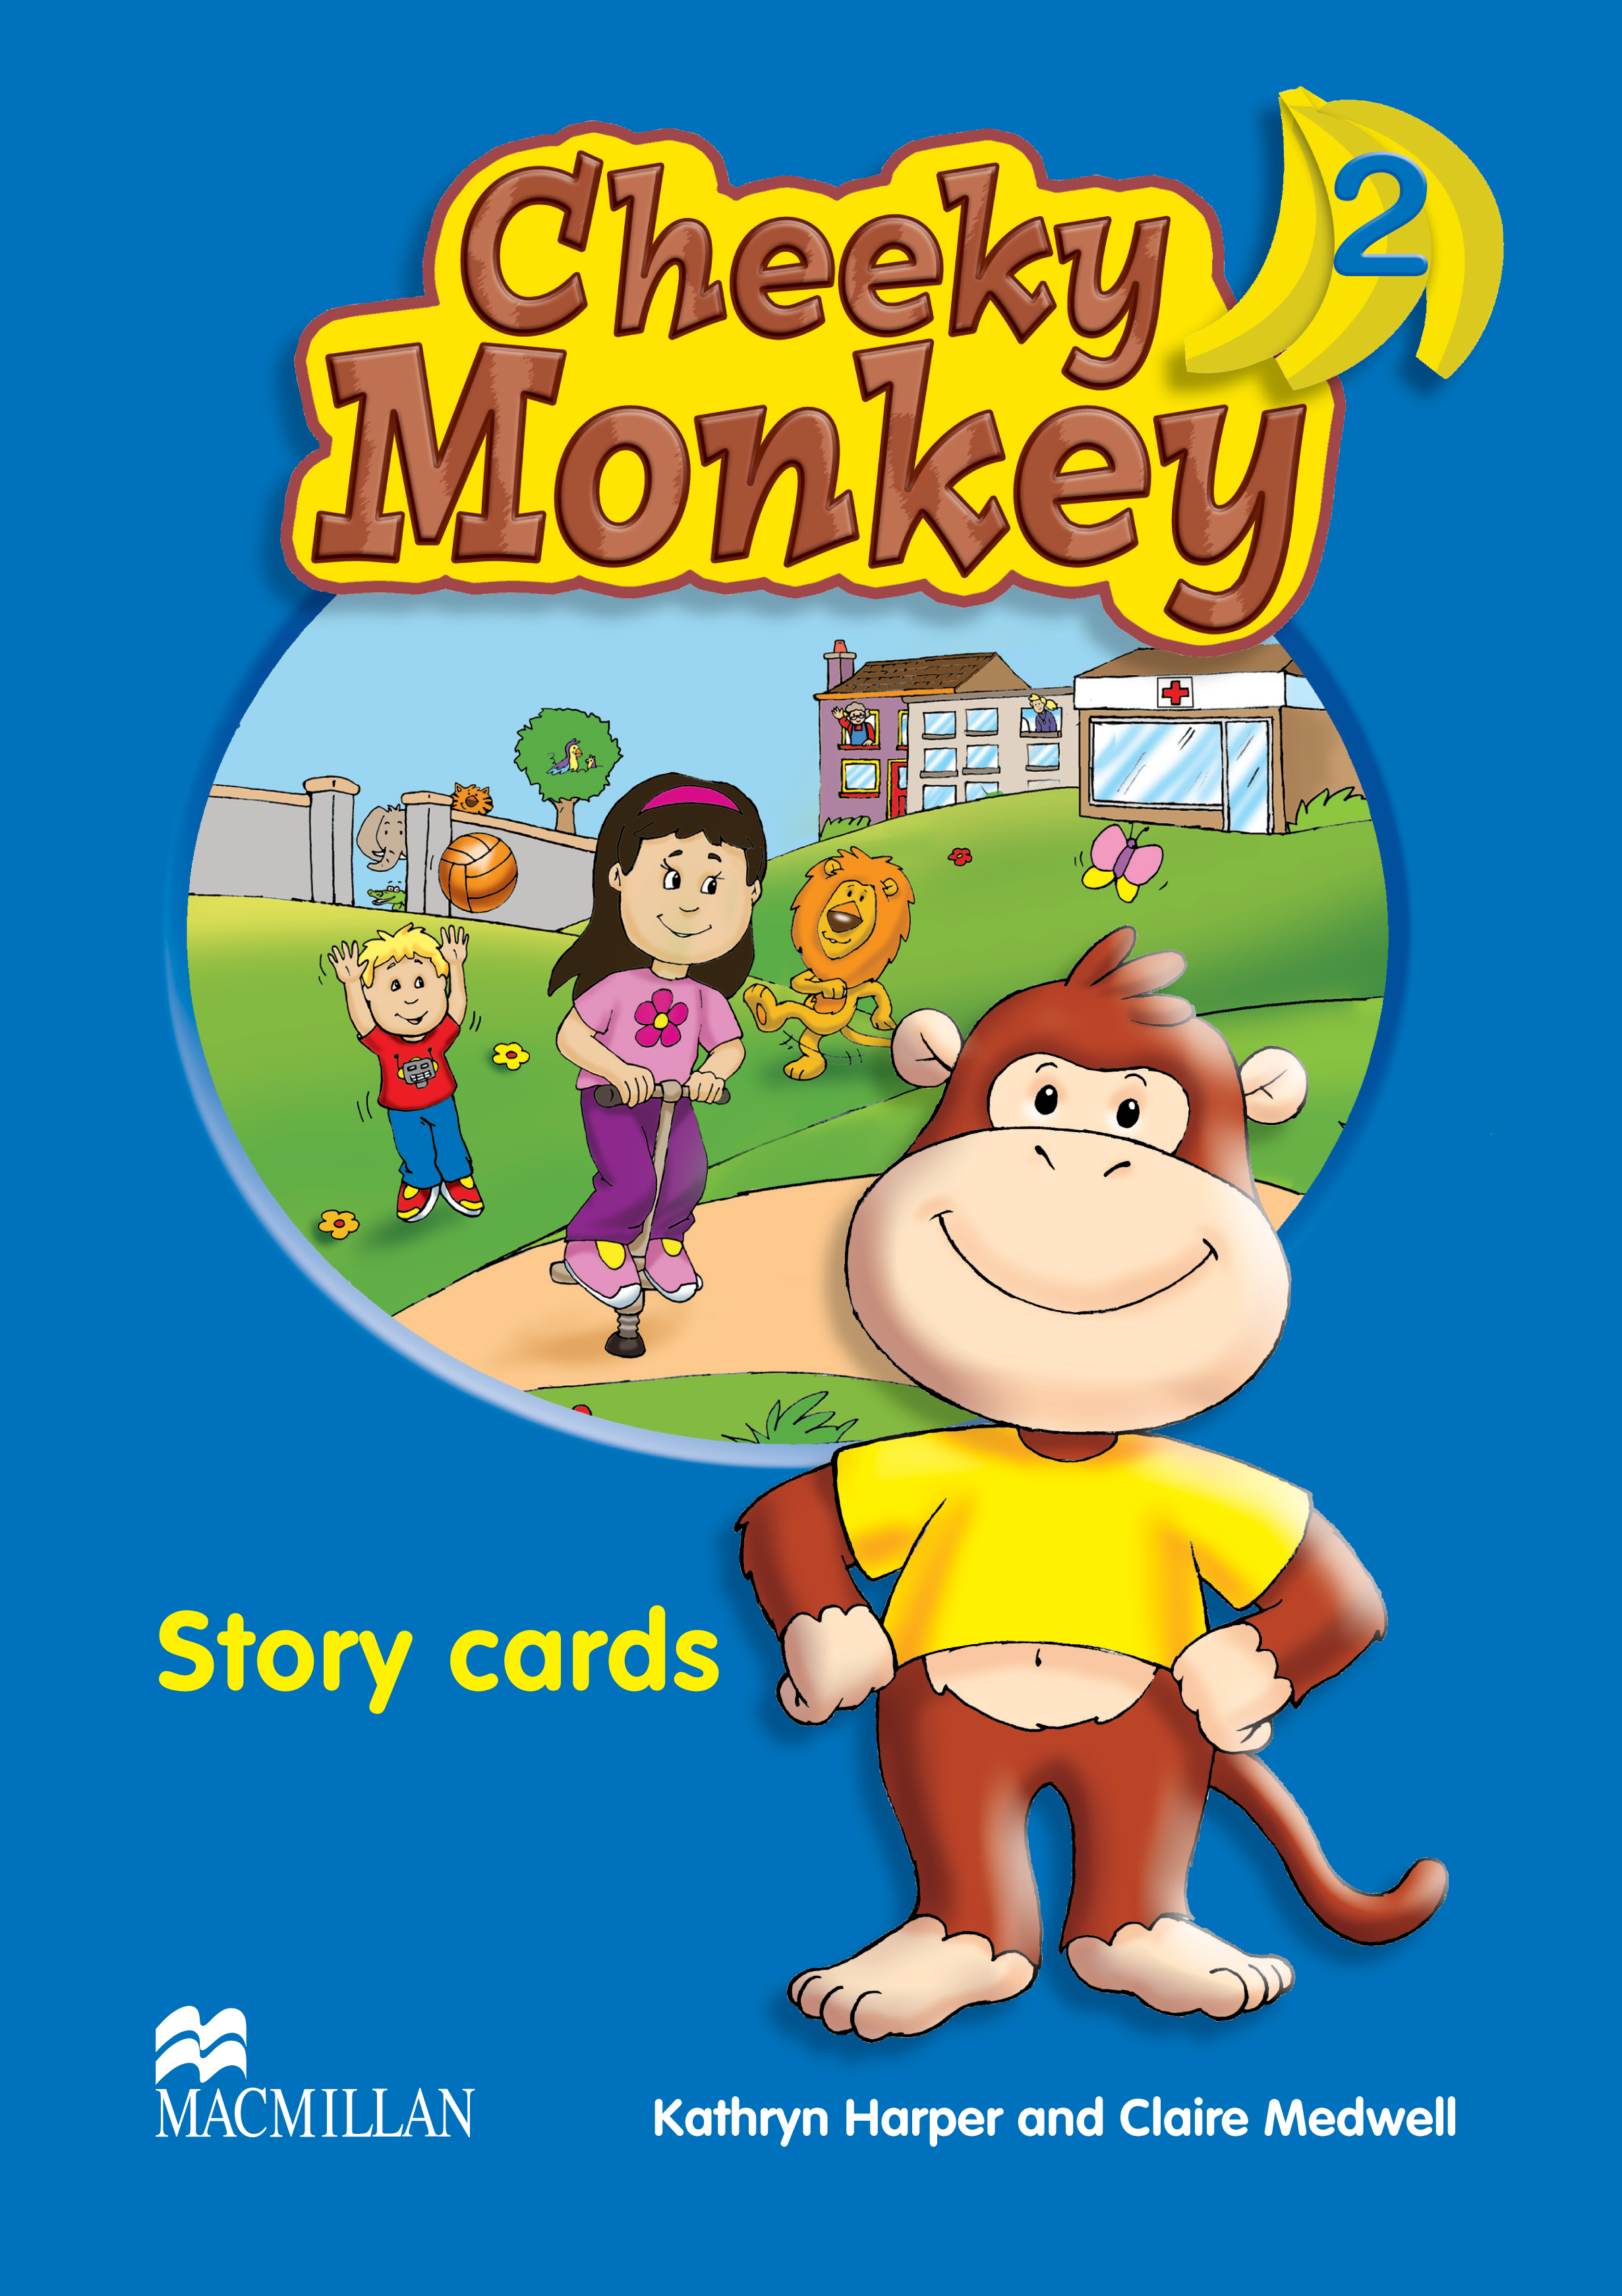 Cheeky Monkey 2 Story Cards